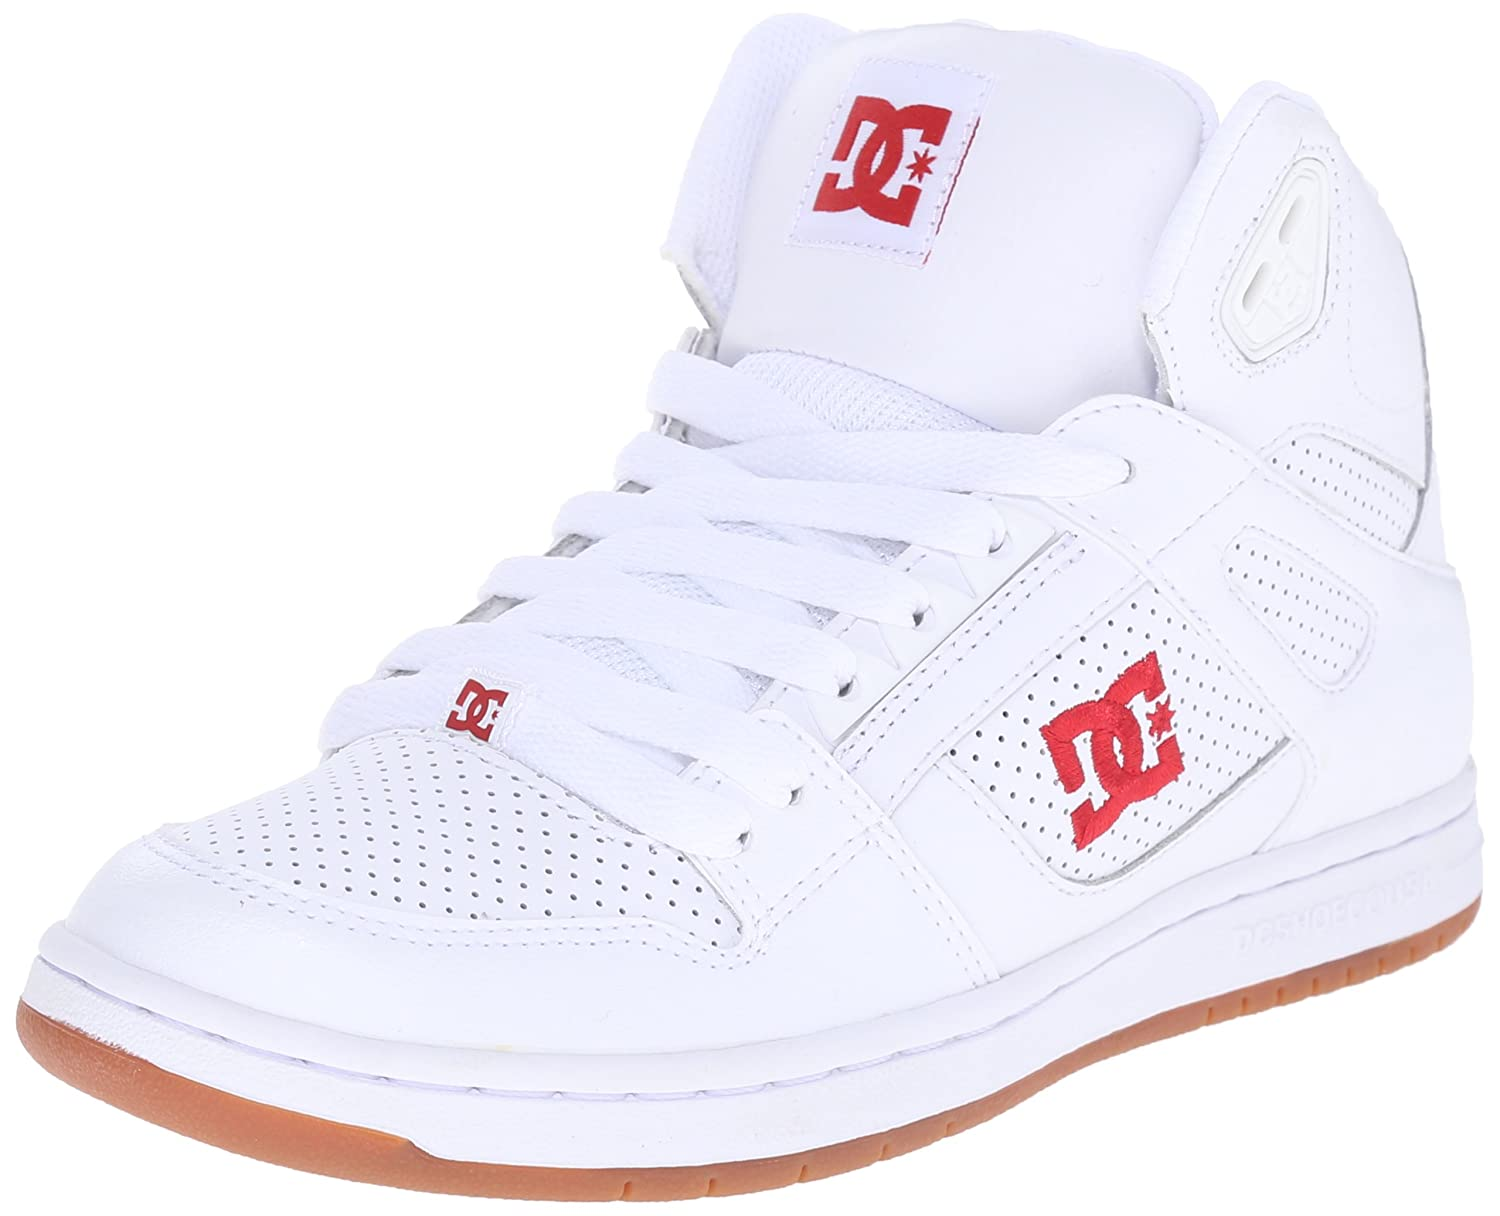 DC Youth Rebound Skate Shoes B014GB784O 10.5 M US Little Kid|White/Red